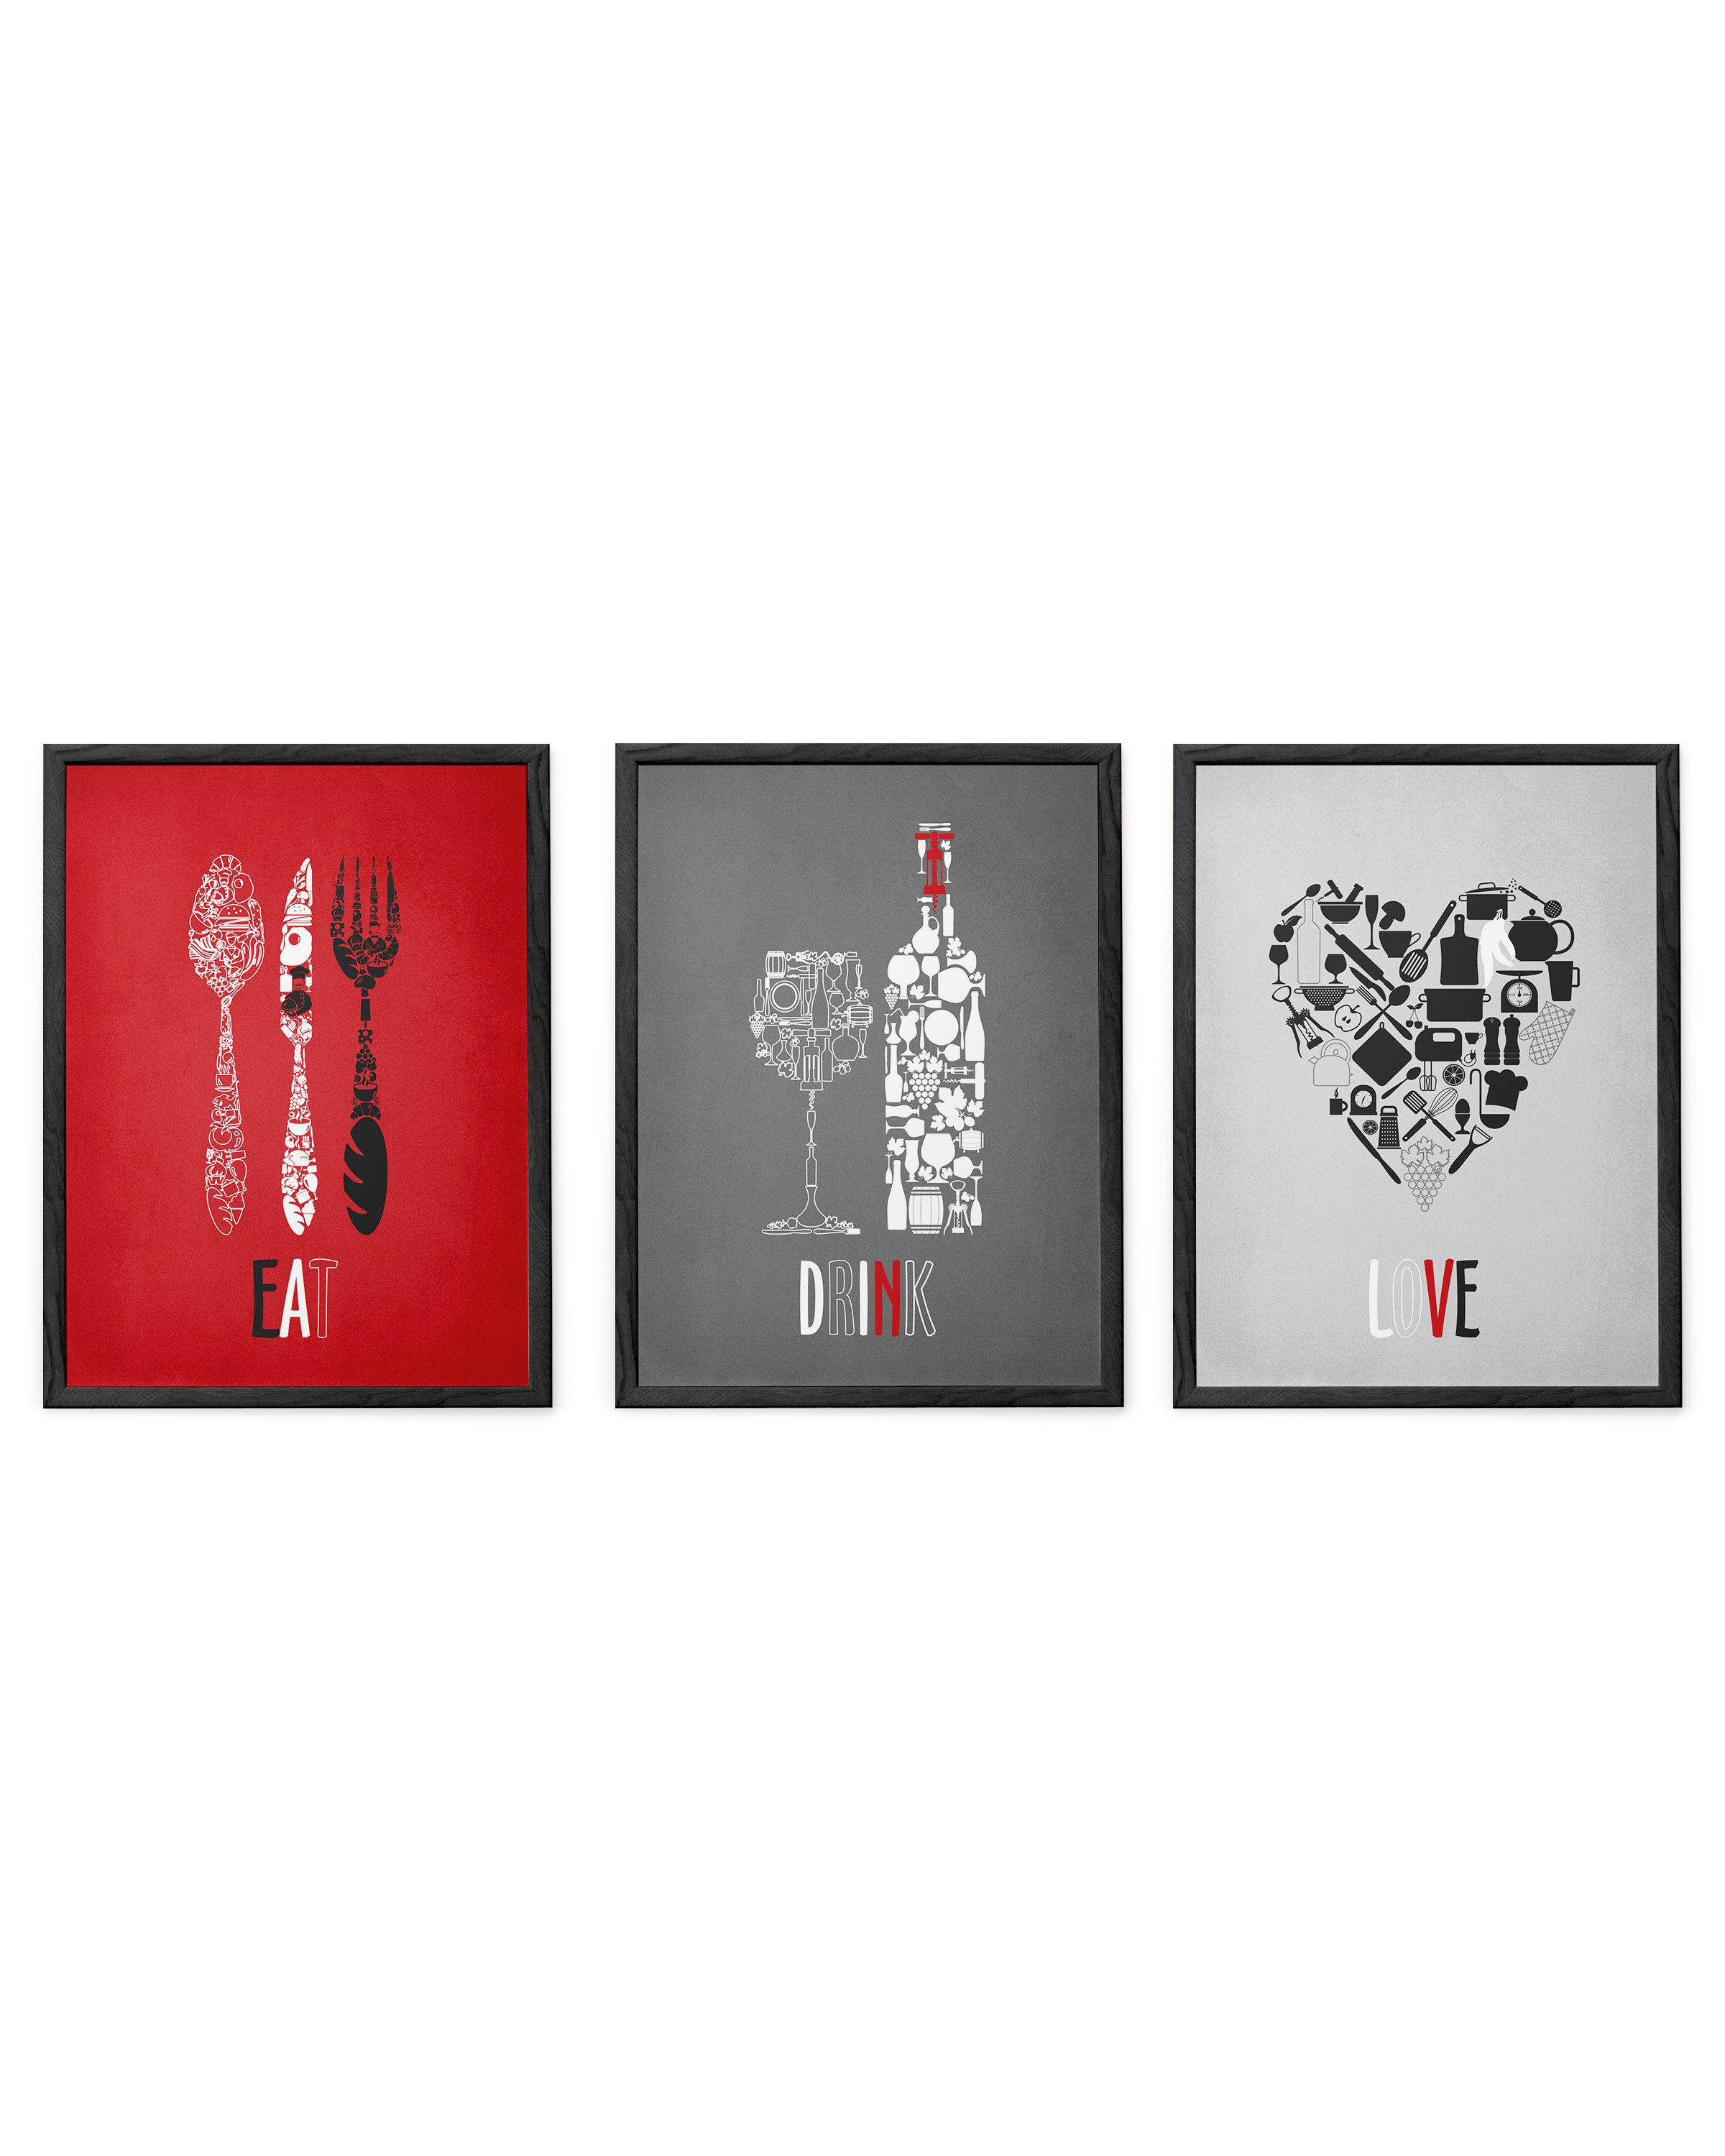 Kitchen Wall Art Print Set Eat Drink Love Utensils Wine Grey Light Mute Red Kitchen Decor Set Of 3 Red Kitchen Decor Kitchen Wall Art Red Kitchen Walls